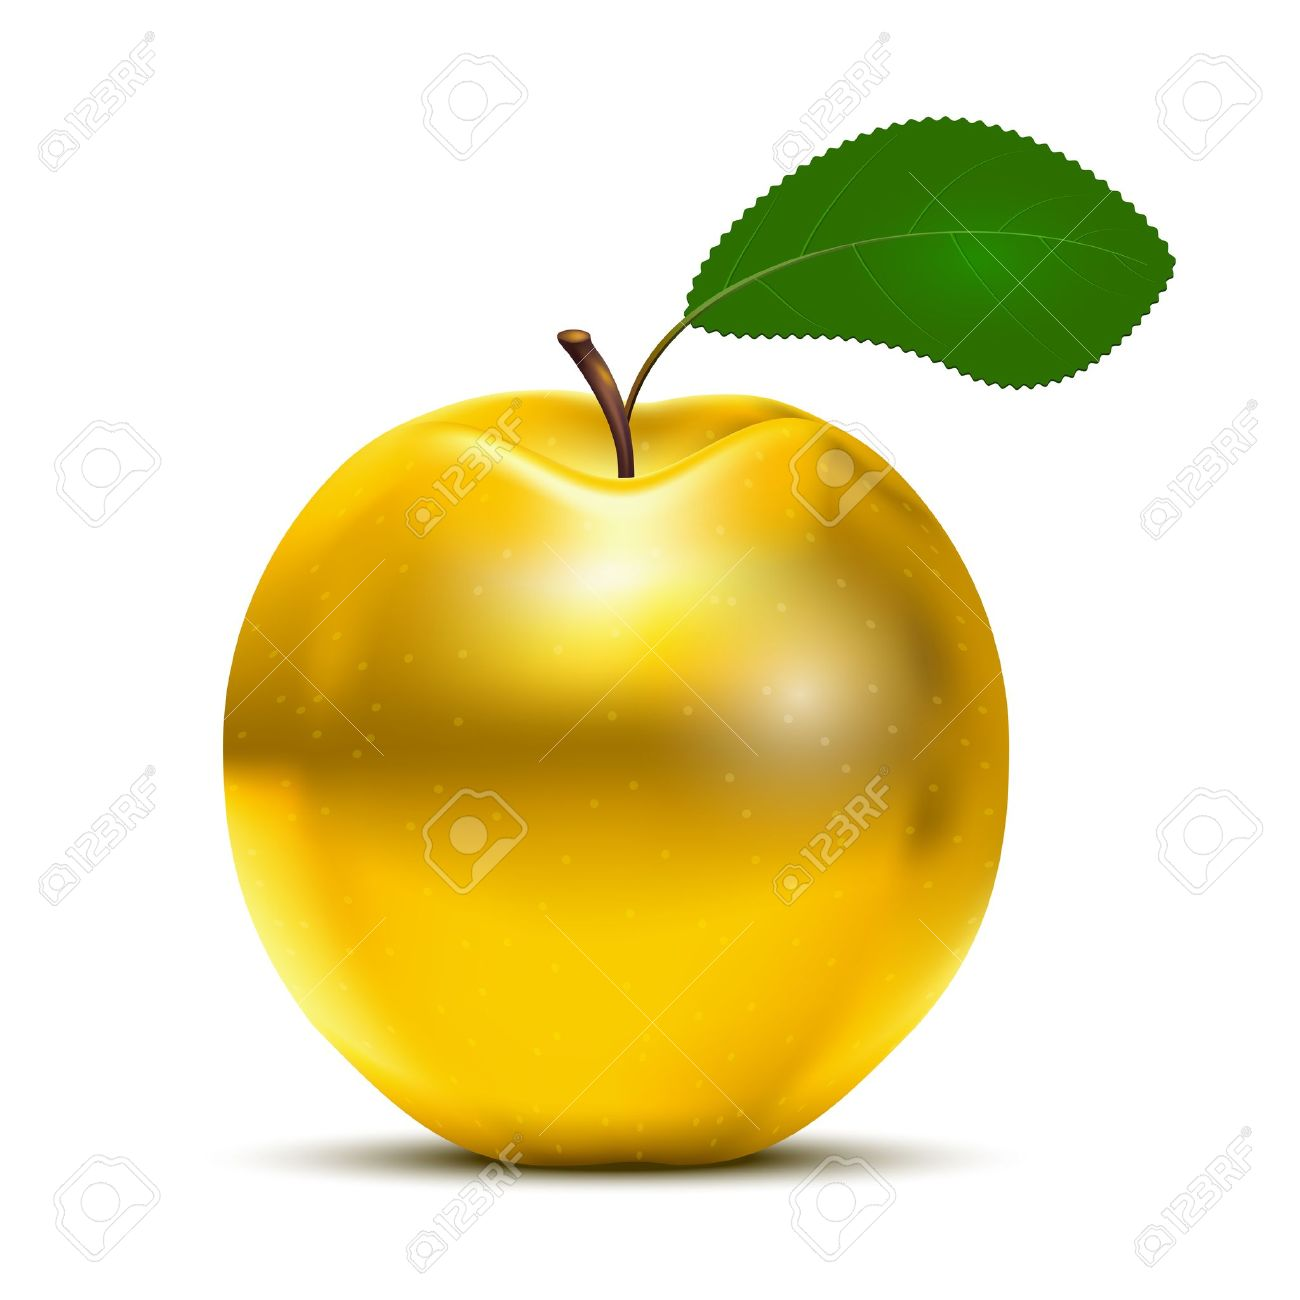 Golden Apple Clipart